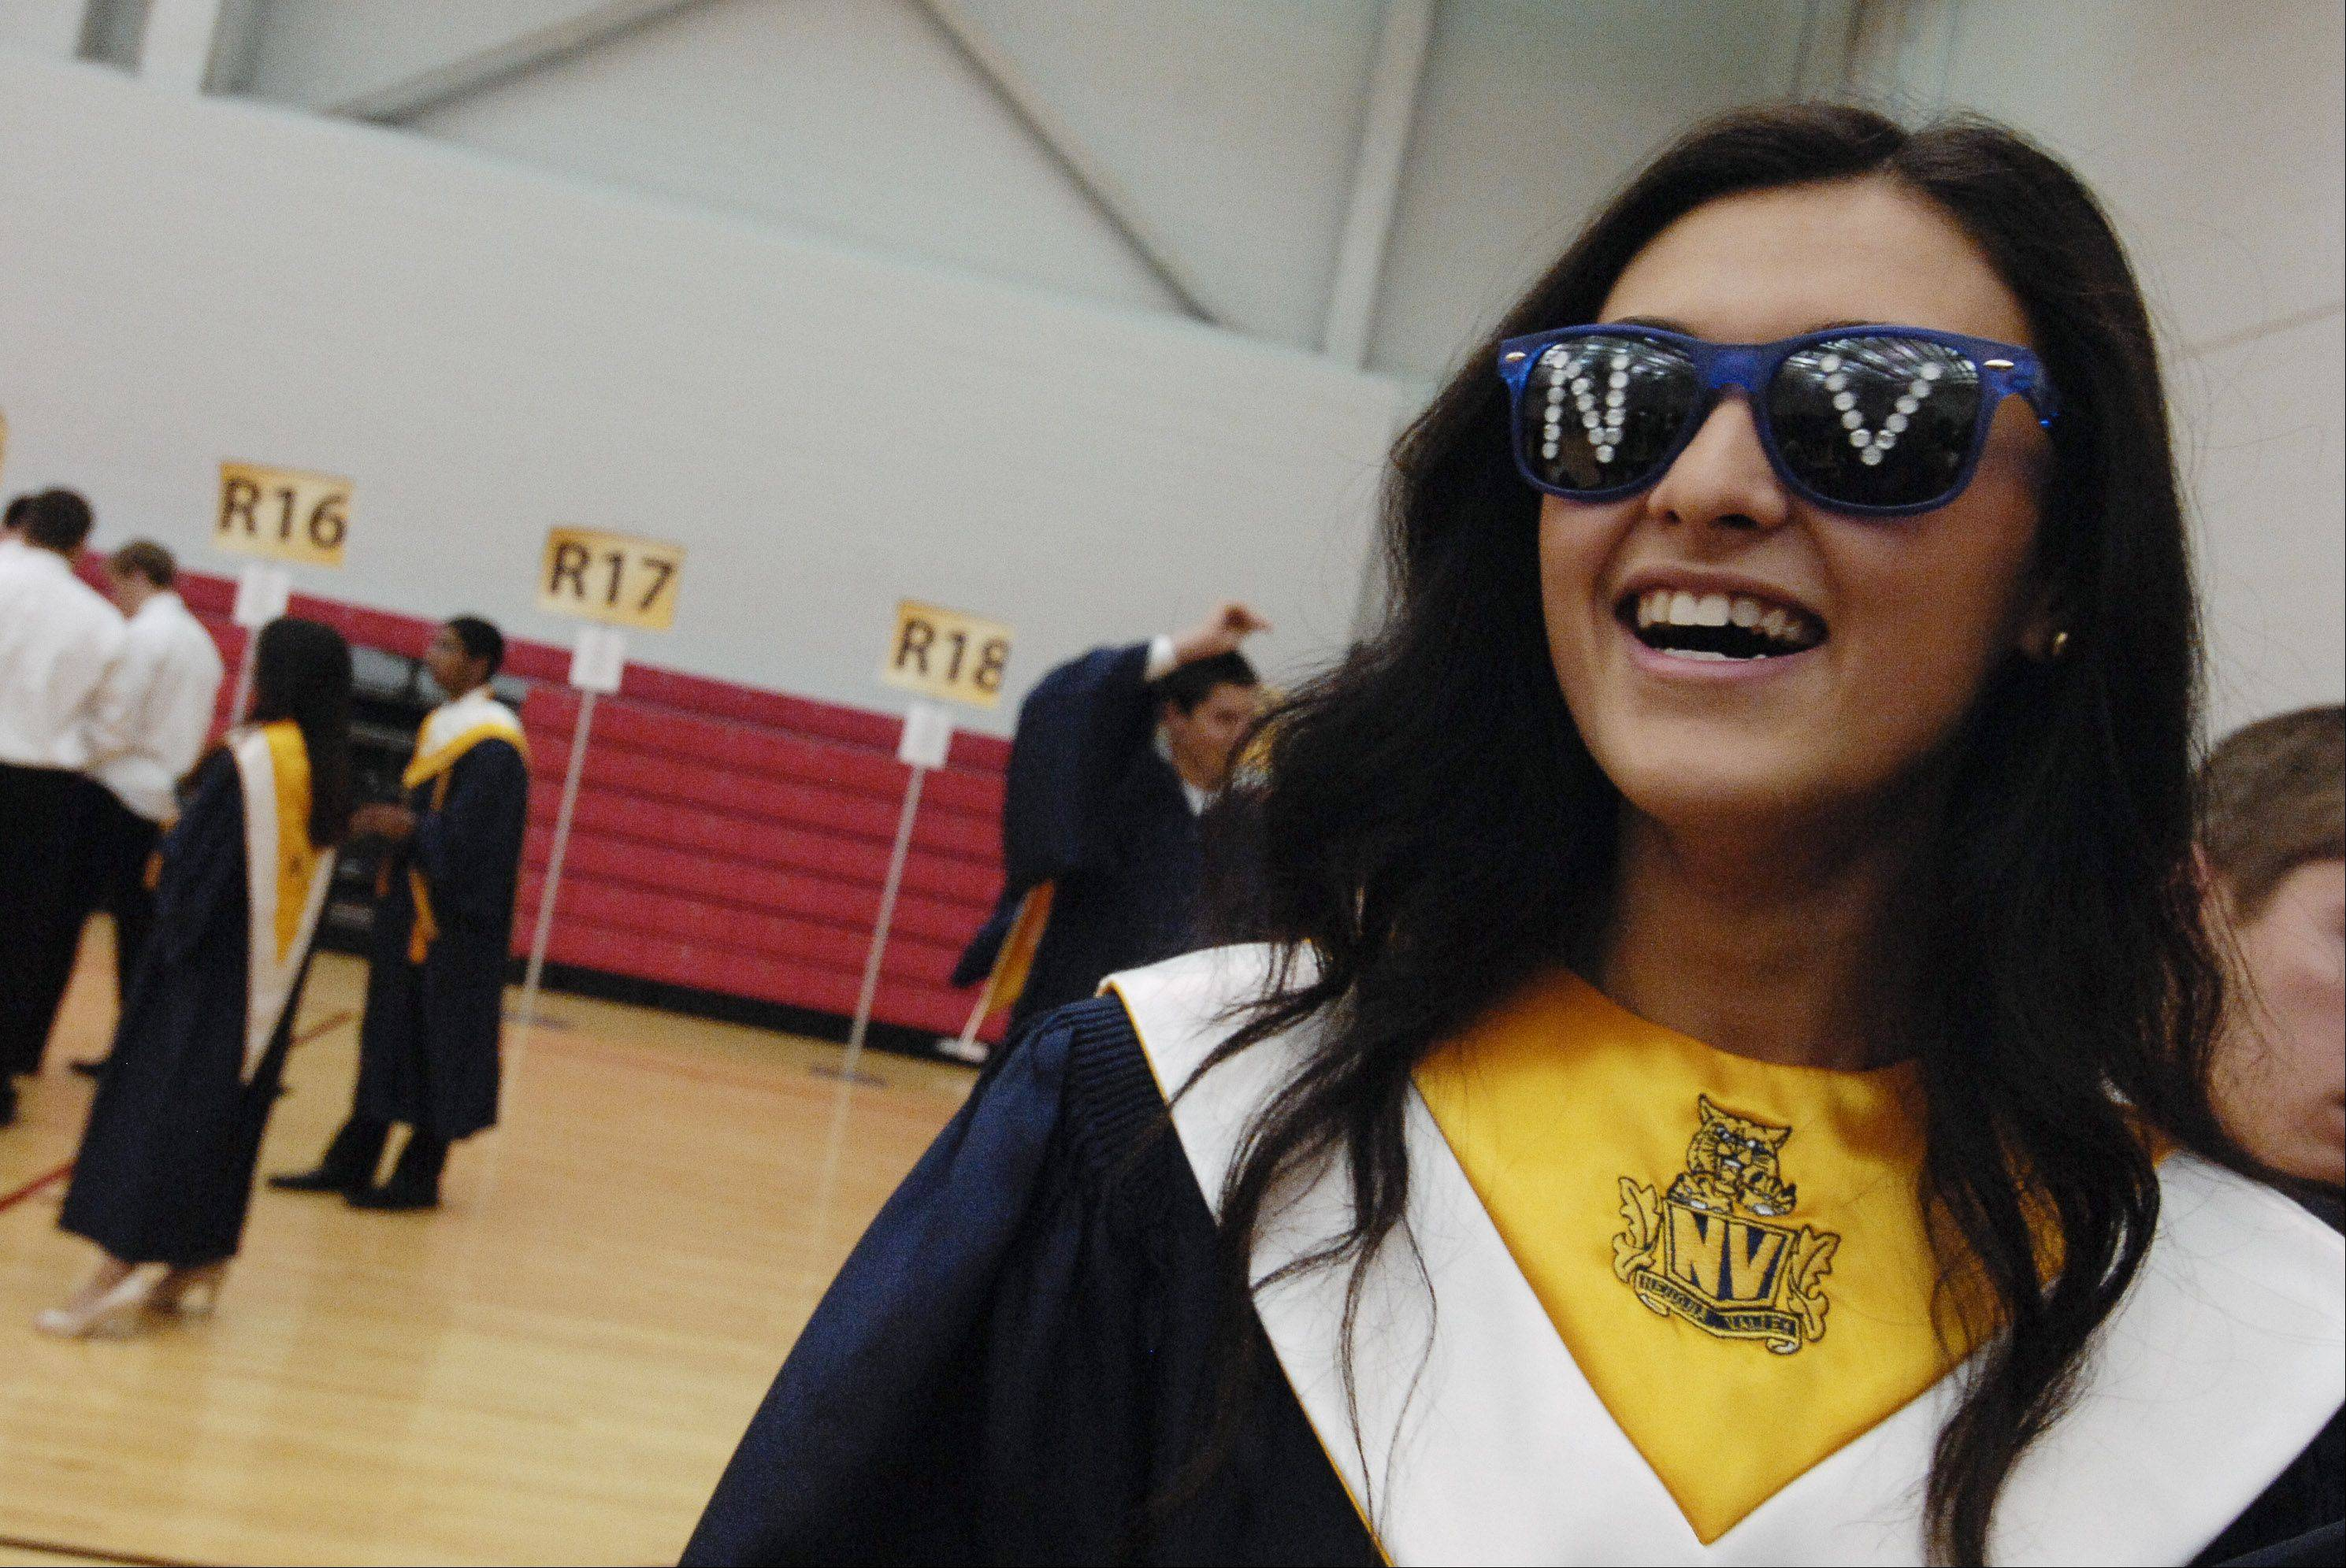 Ashley O'Hara-Marin sports sunglasses with the Neuqua Valley initials during after the Neuqua Valley High School graduation on Sunday, May 26 at the NIU Convocation Center in DeKalb.